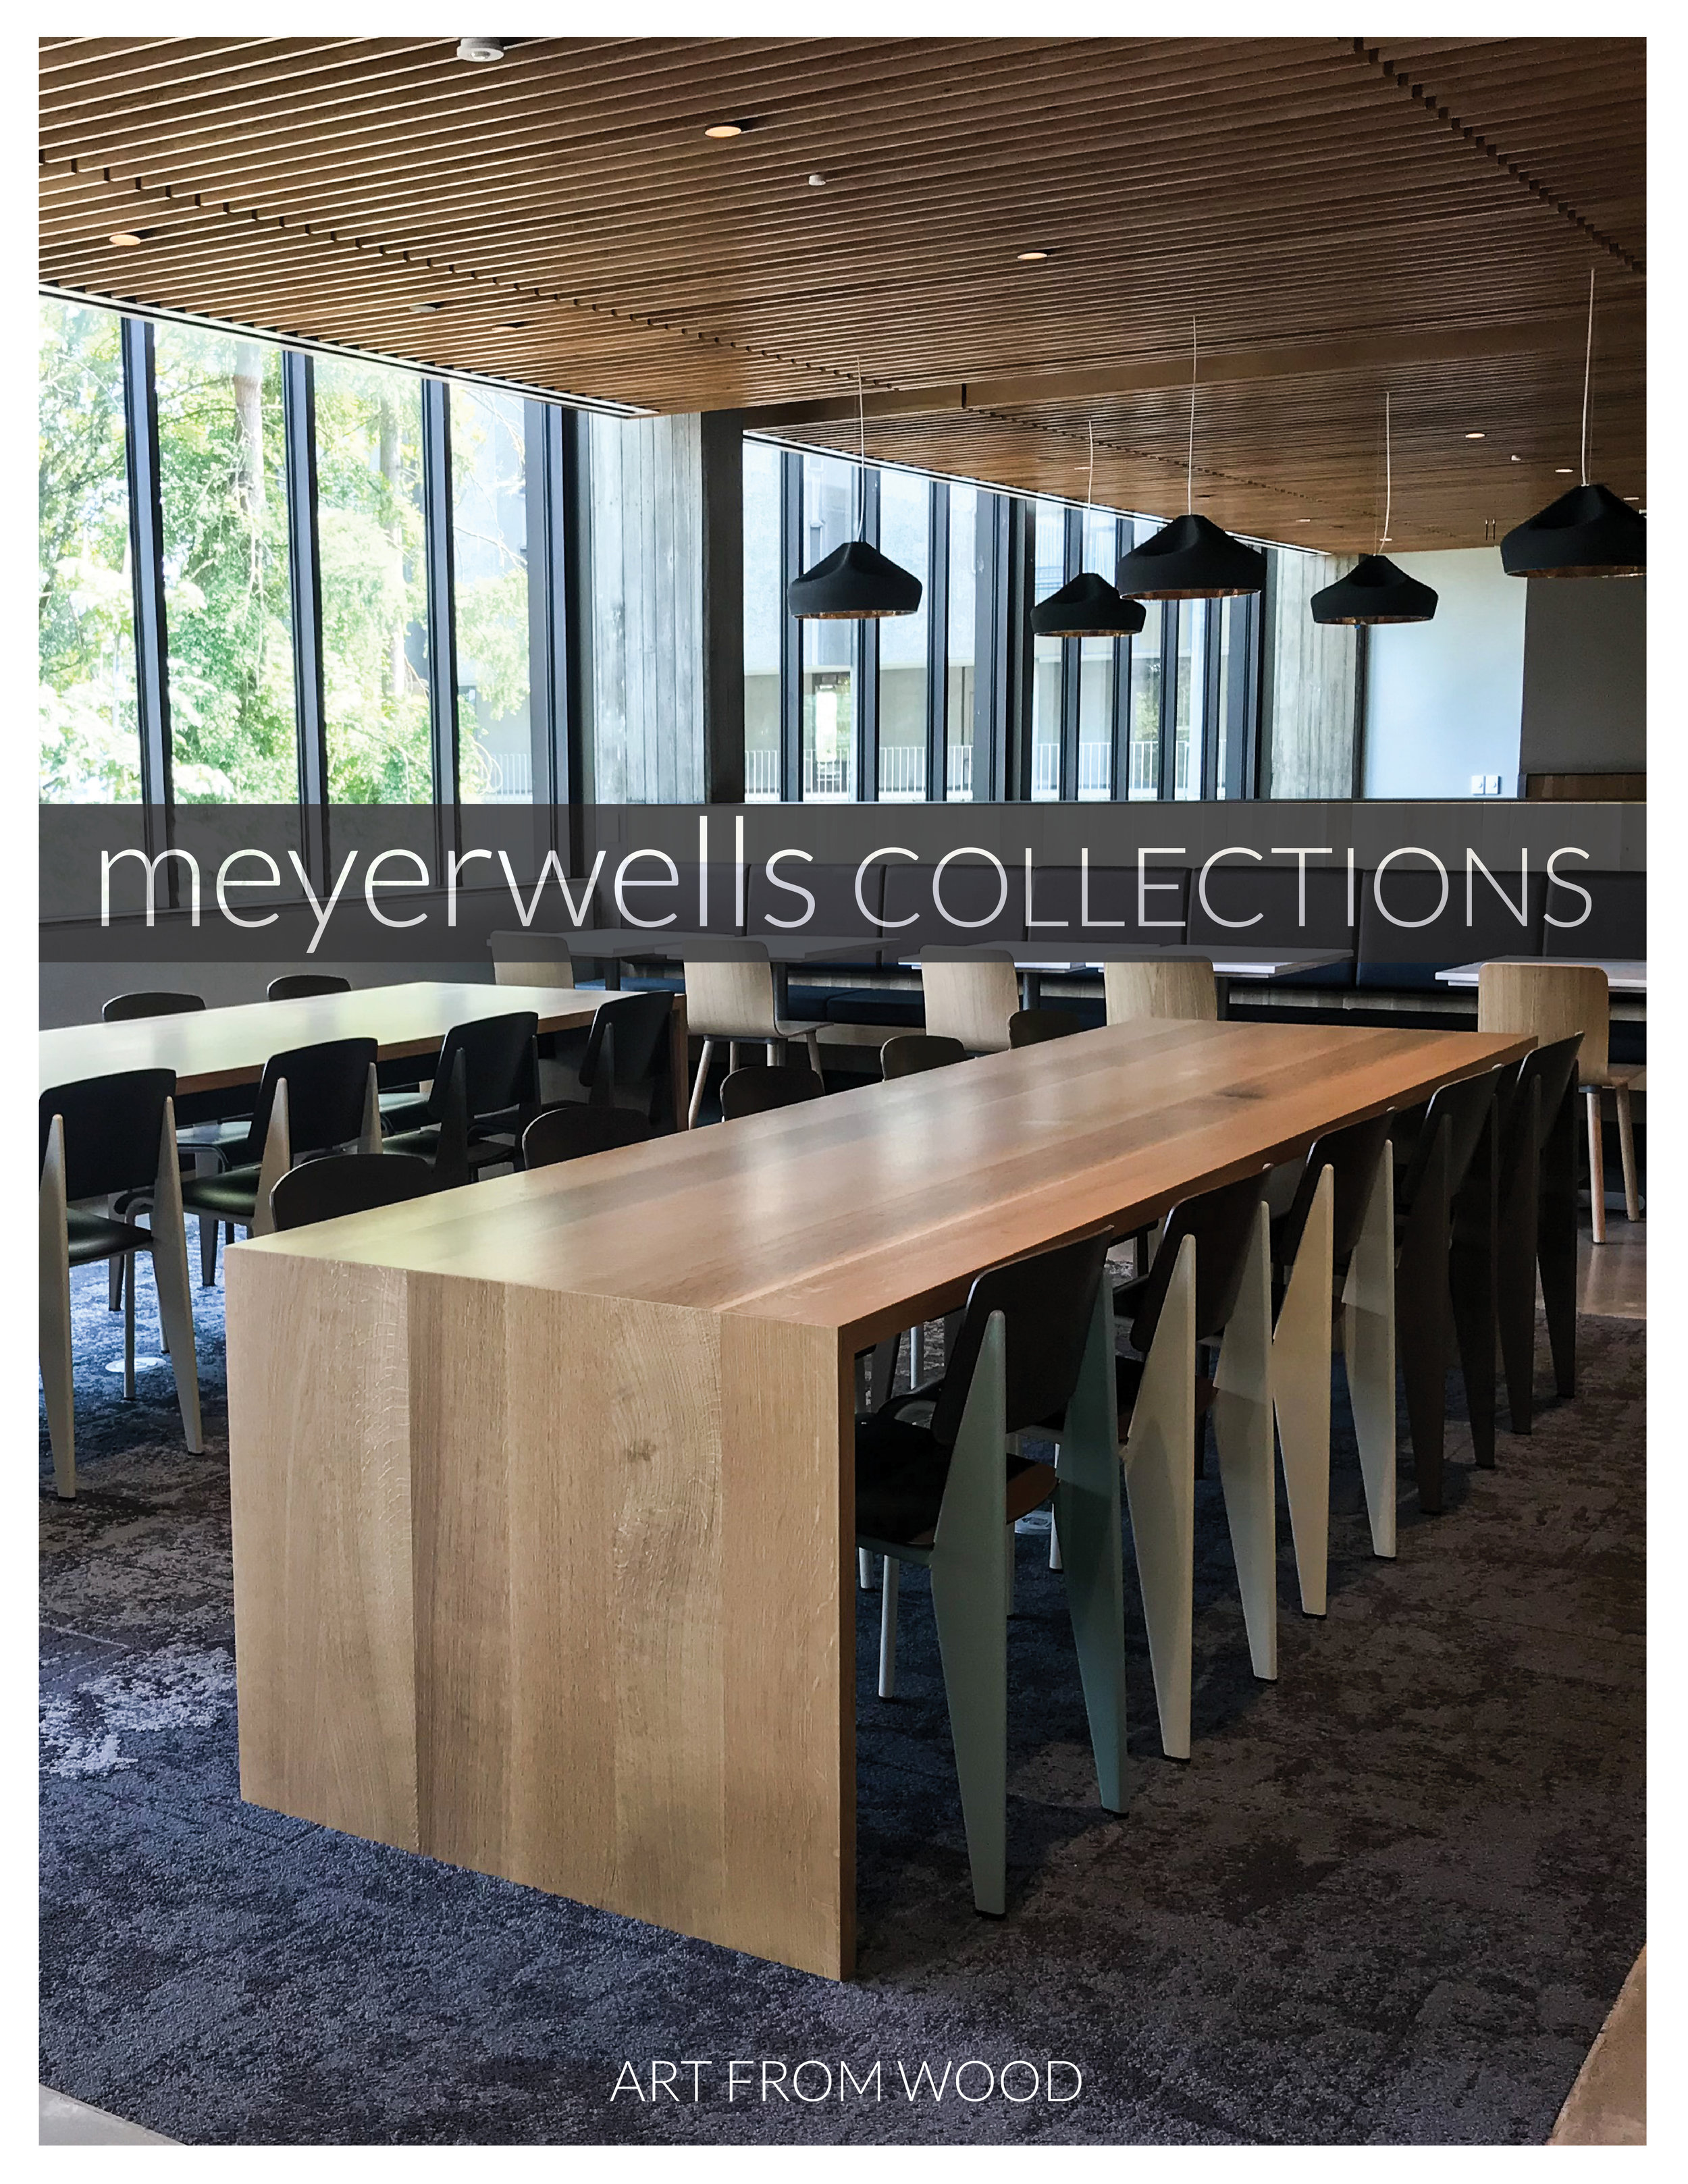 MEYER WELLS COLLECTIONS